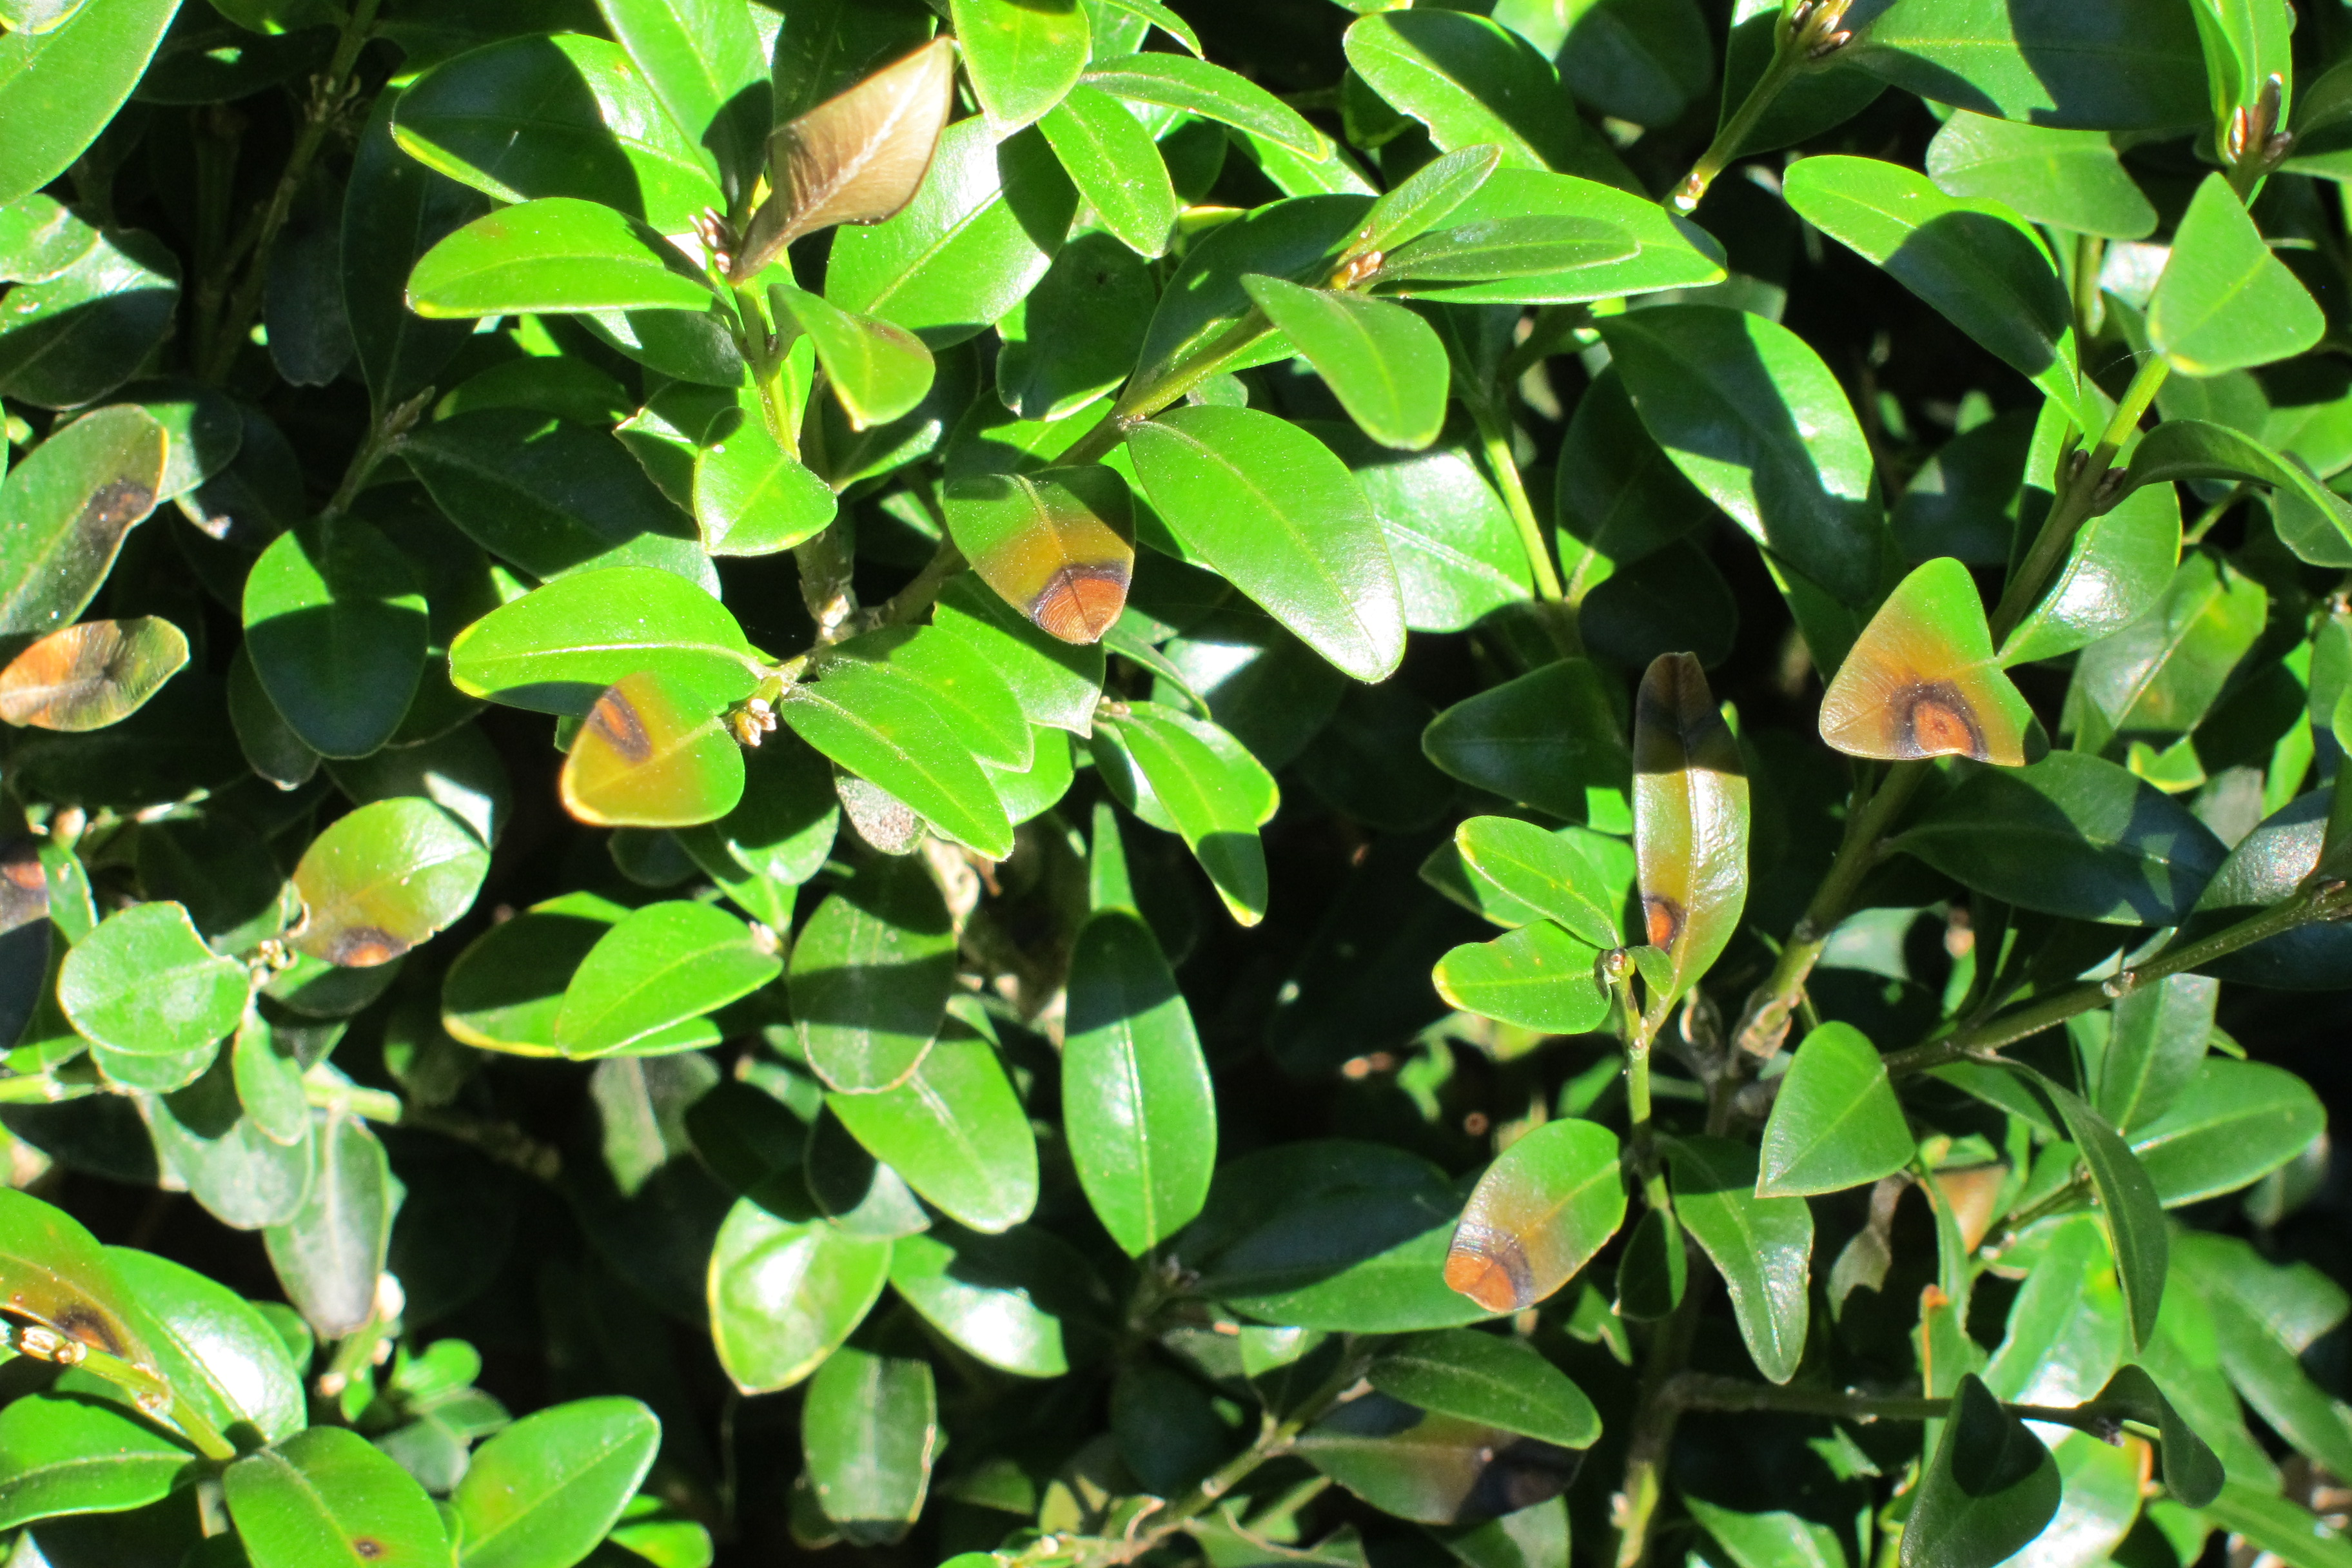 Leaf spots on boxwood caused by the boxwood blight pathogen (photo by A. Bordas)